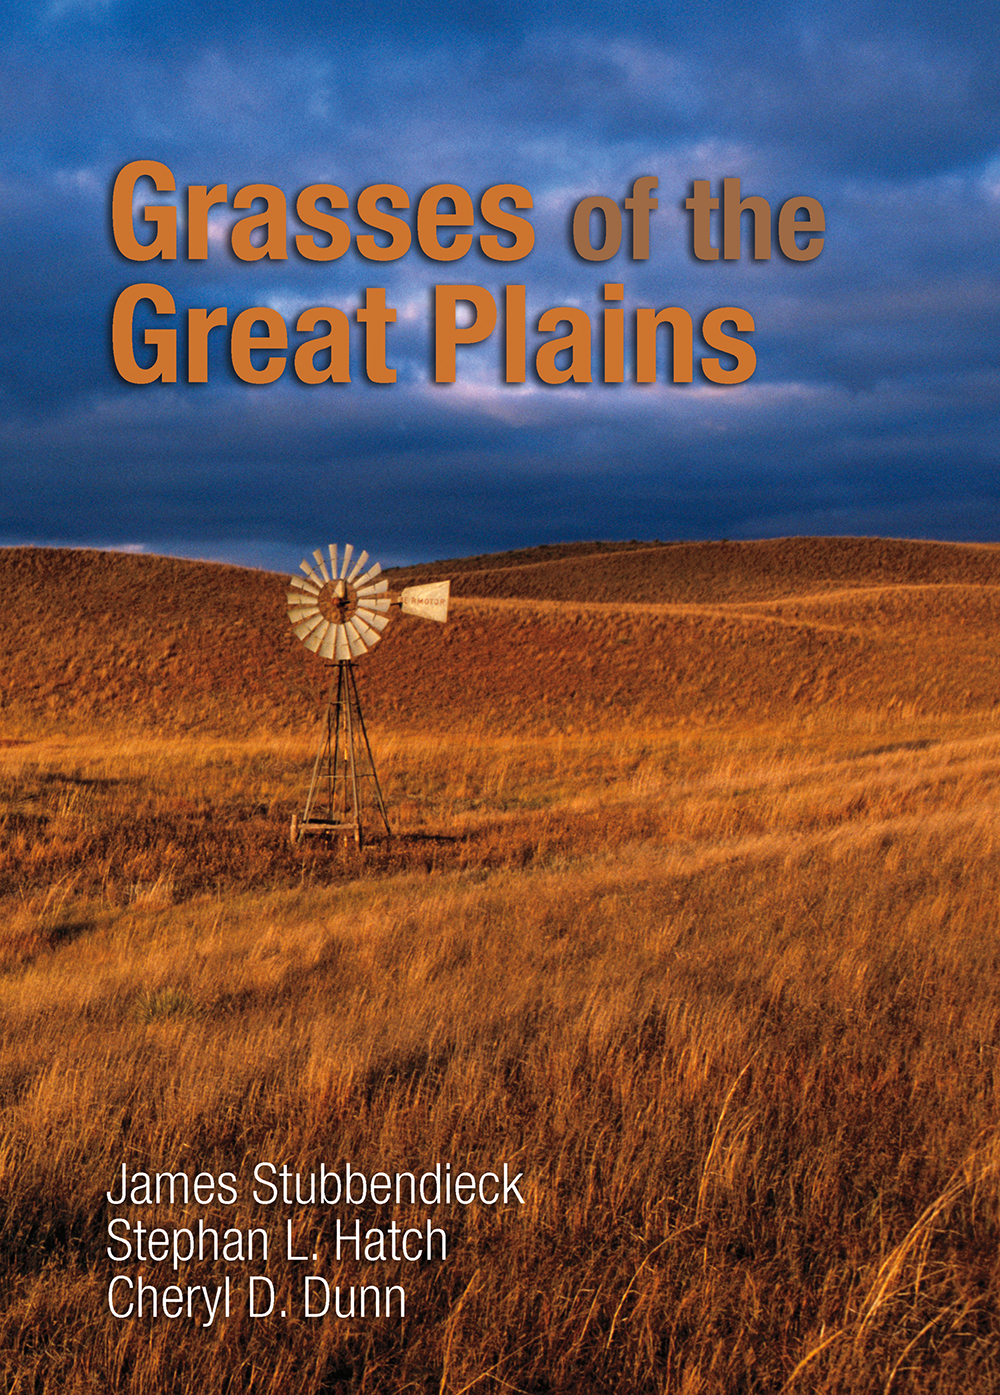 Michael's photo of a Sandhills landscape is the cover photo for the Grasses of the Great Plains book by James Stubbendieck, Stephan L. Hatch, and Cheryl D. Dunn.